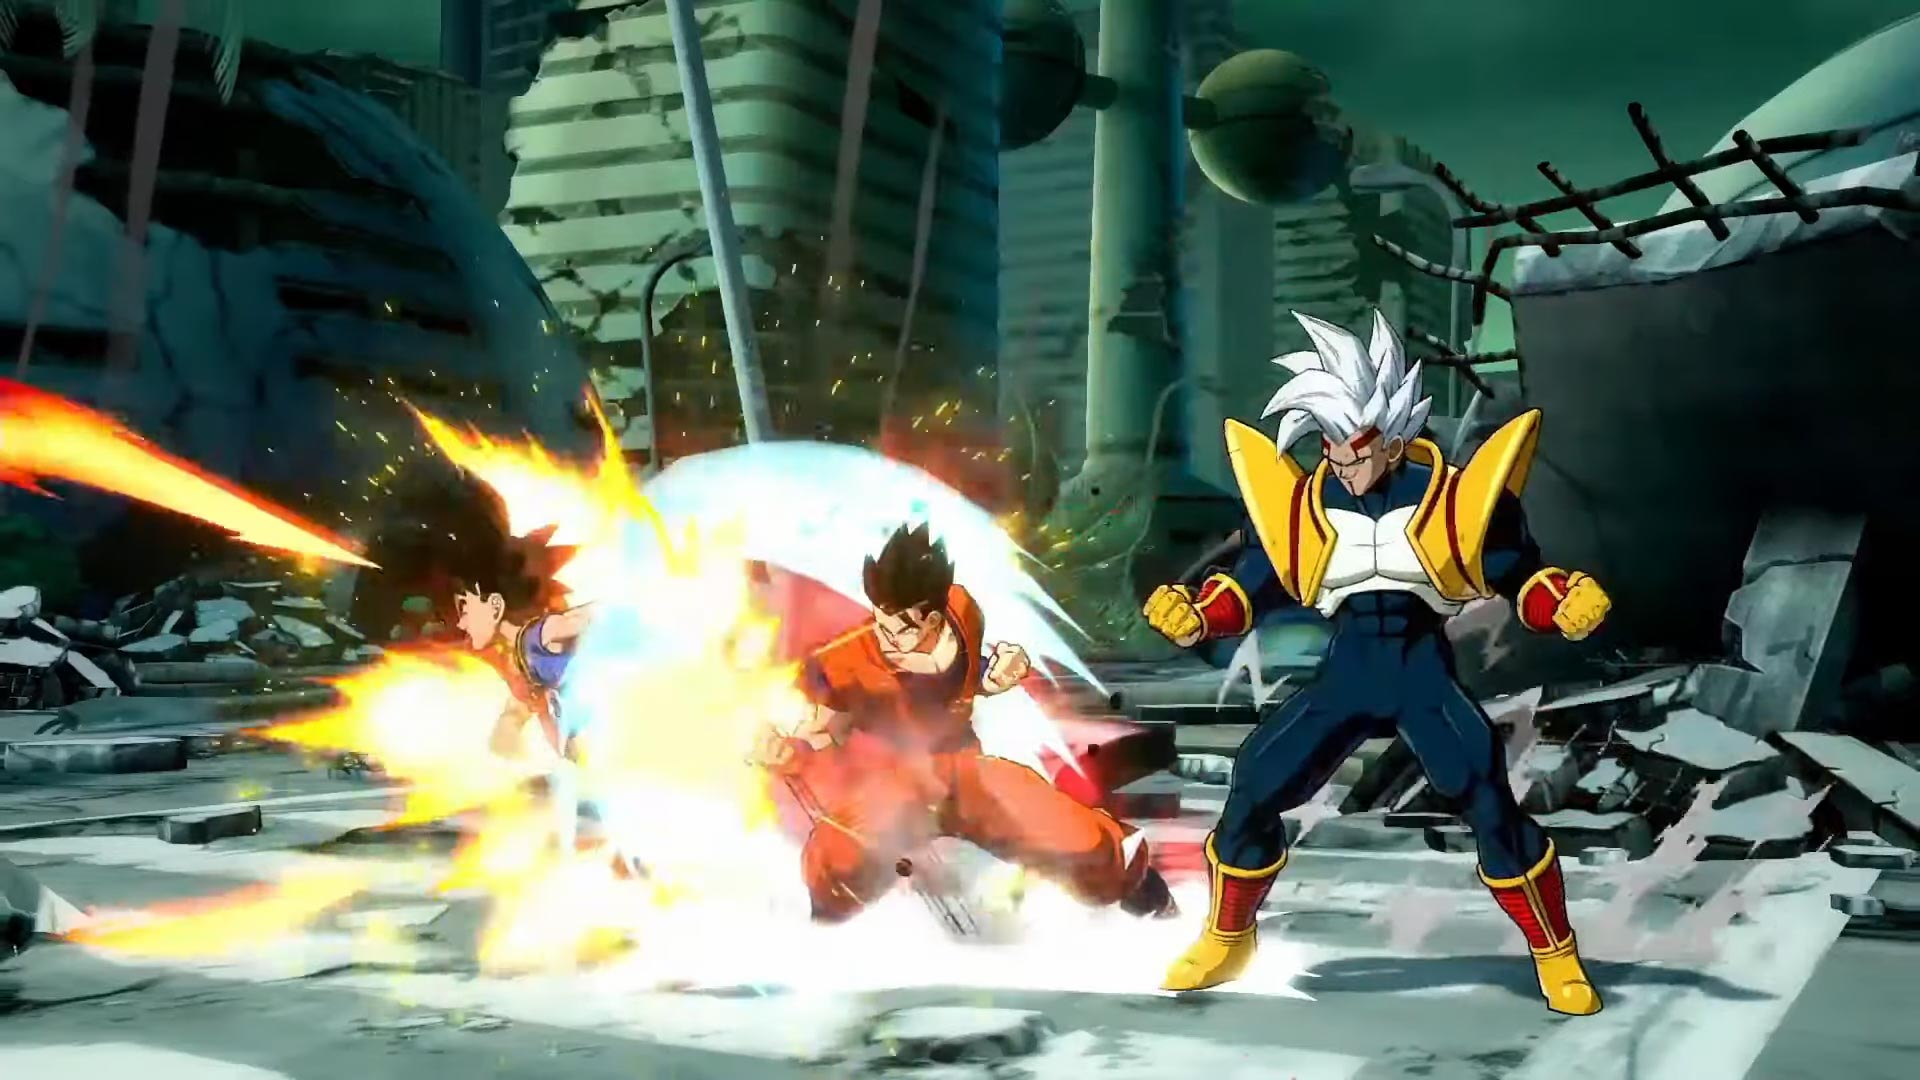 Super Baby 2 Trailer and Super Saiyan 4 Gogeta Reveal Image Gallery 3 out of 9 image gallery